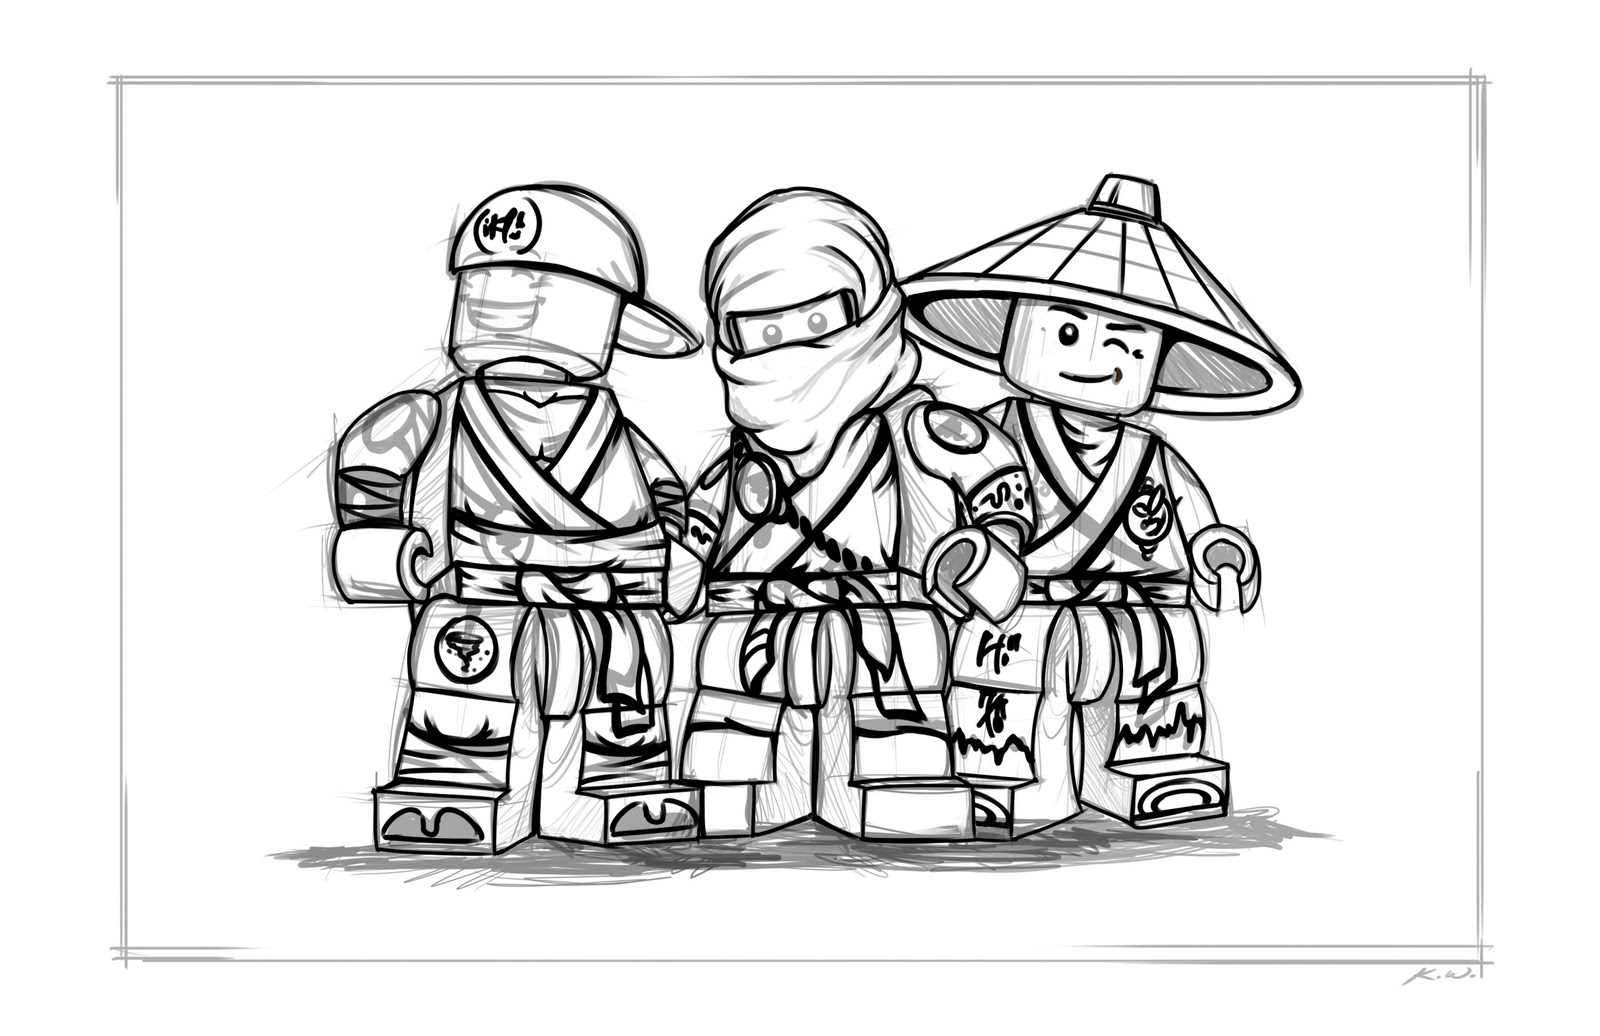 download lego ninjago coloring pages - Ninjago Pictures To Color